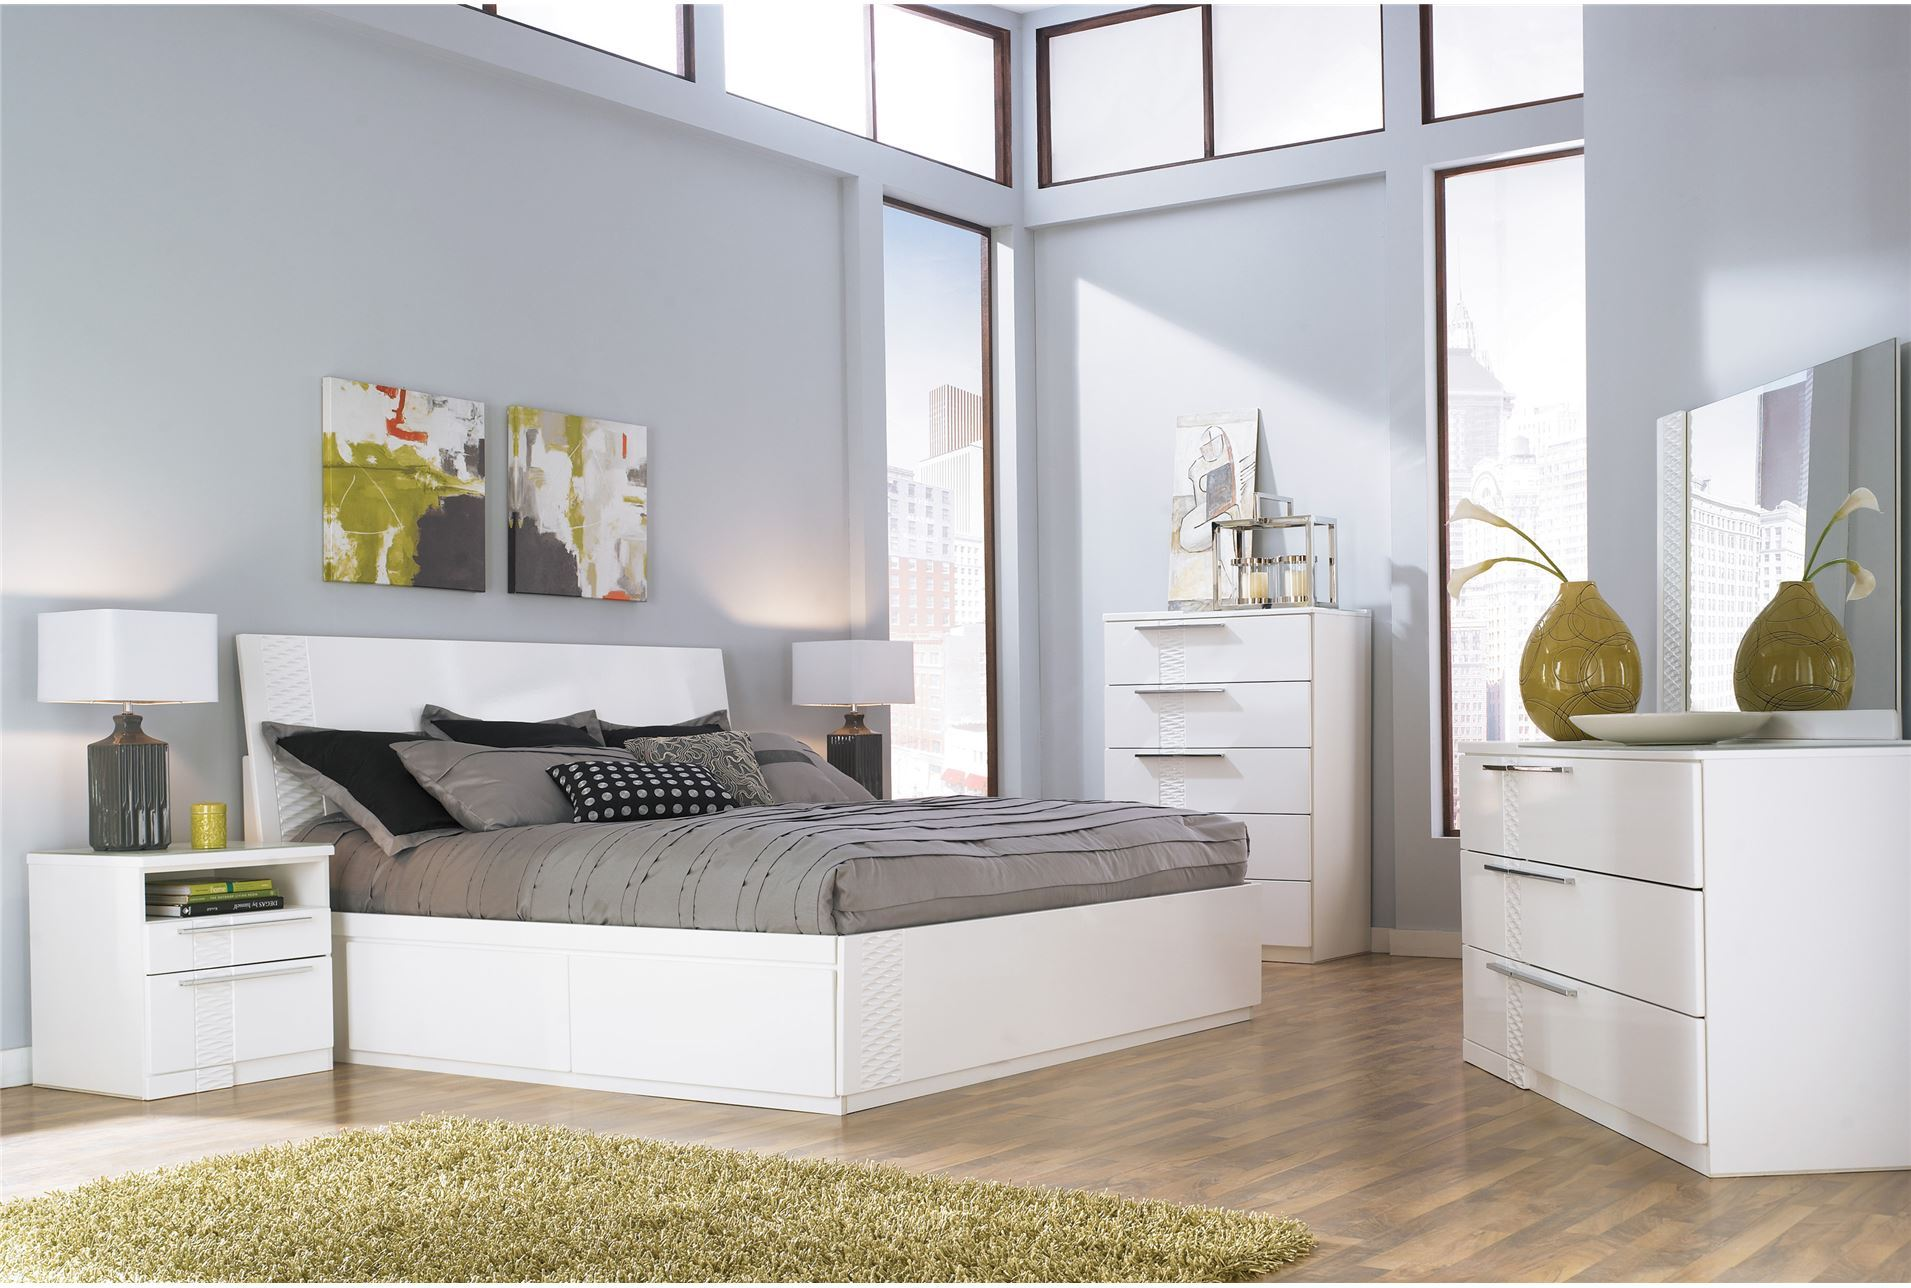 7 beautiful white queen size beds from us stores cute for White queen bedroom set